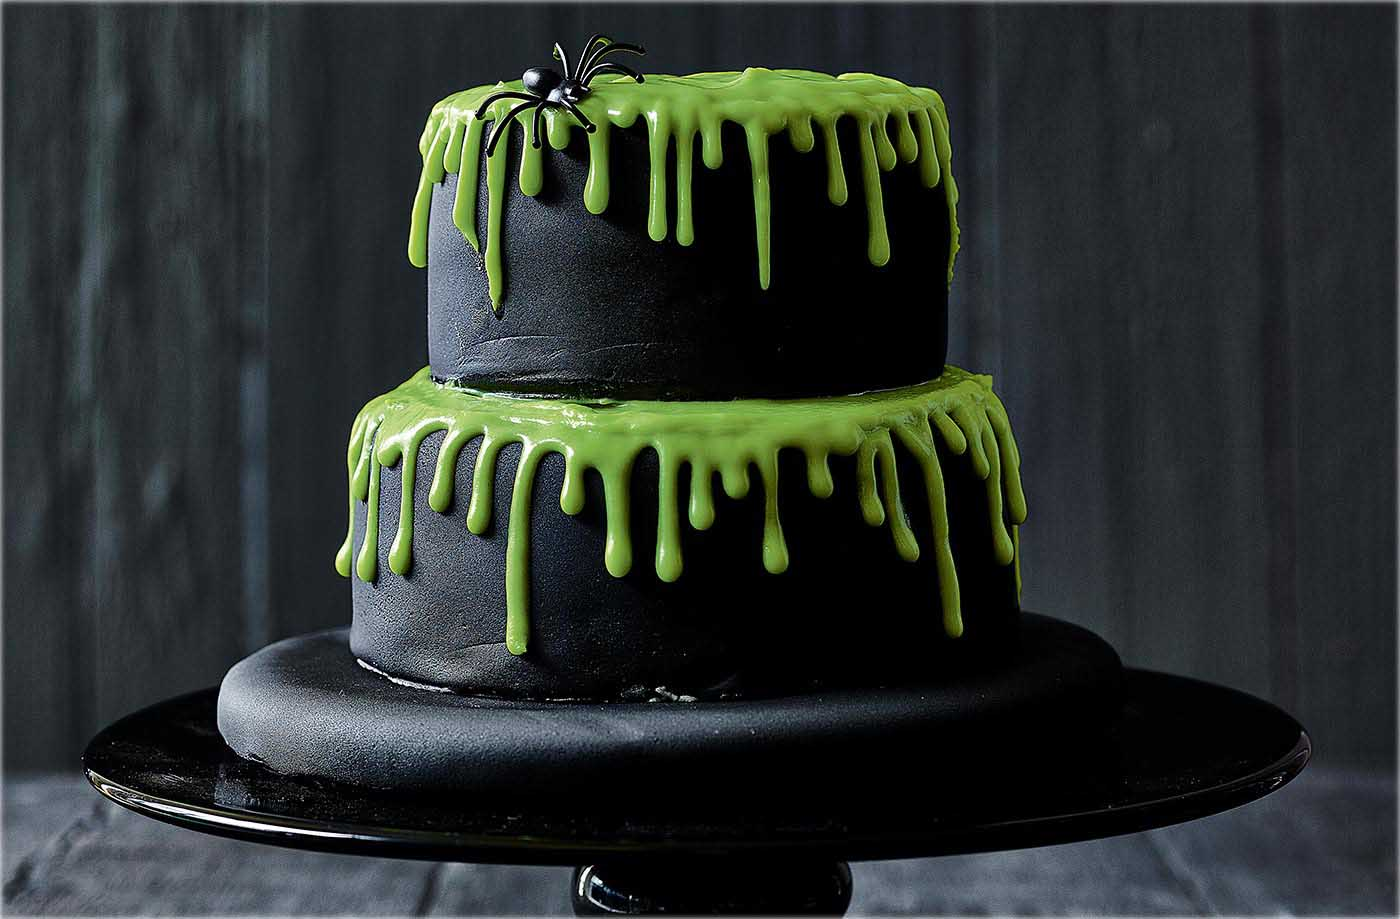 Dreadful Drip Cake Recipe Halloween Cakes Tesco Real Food